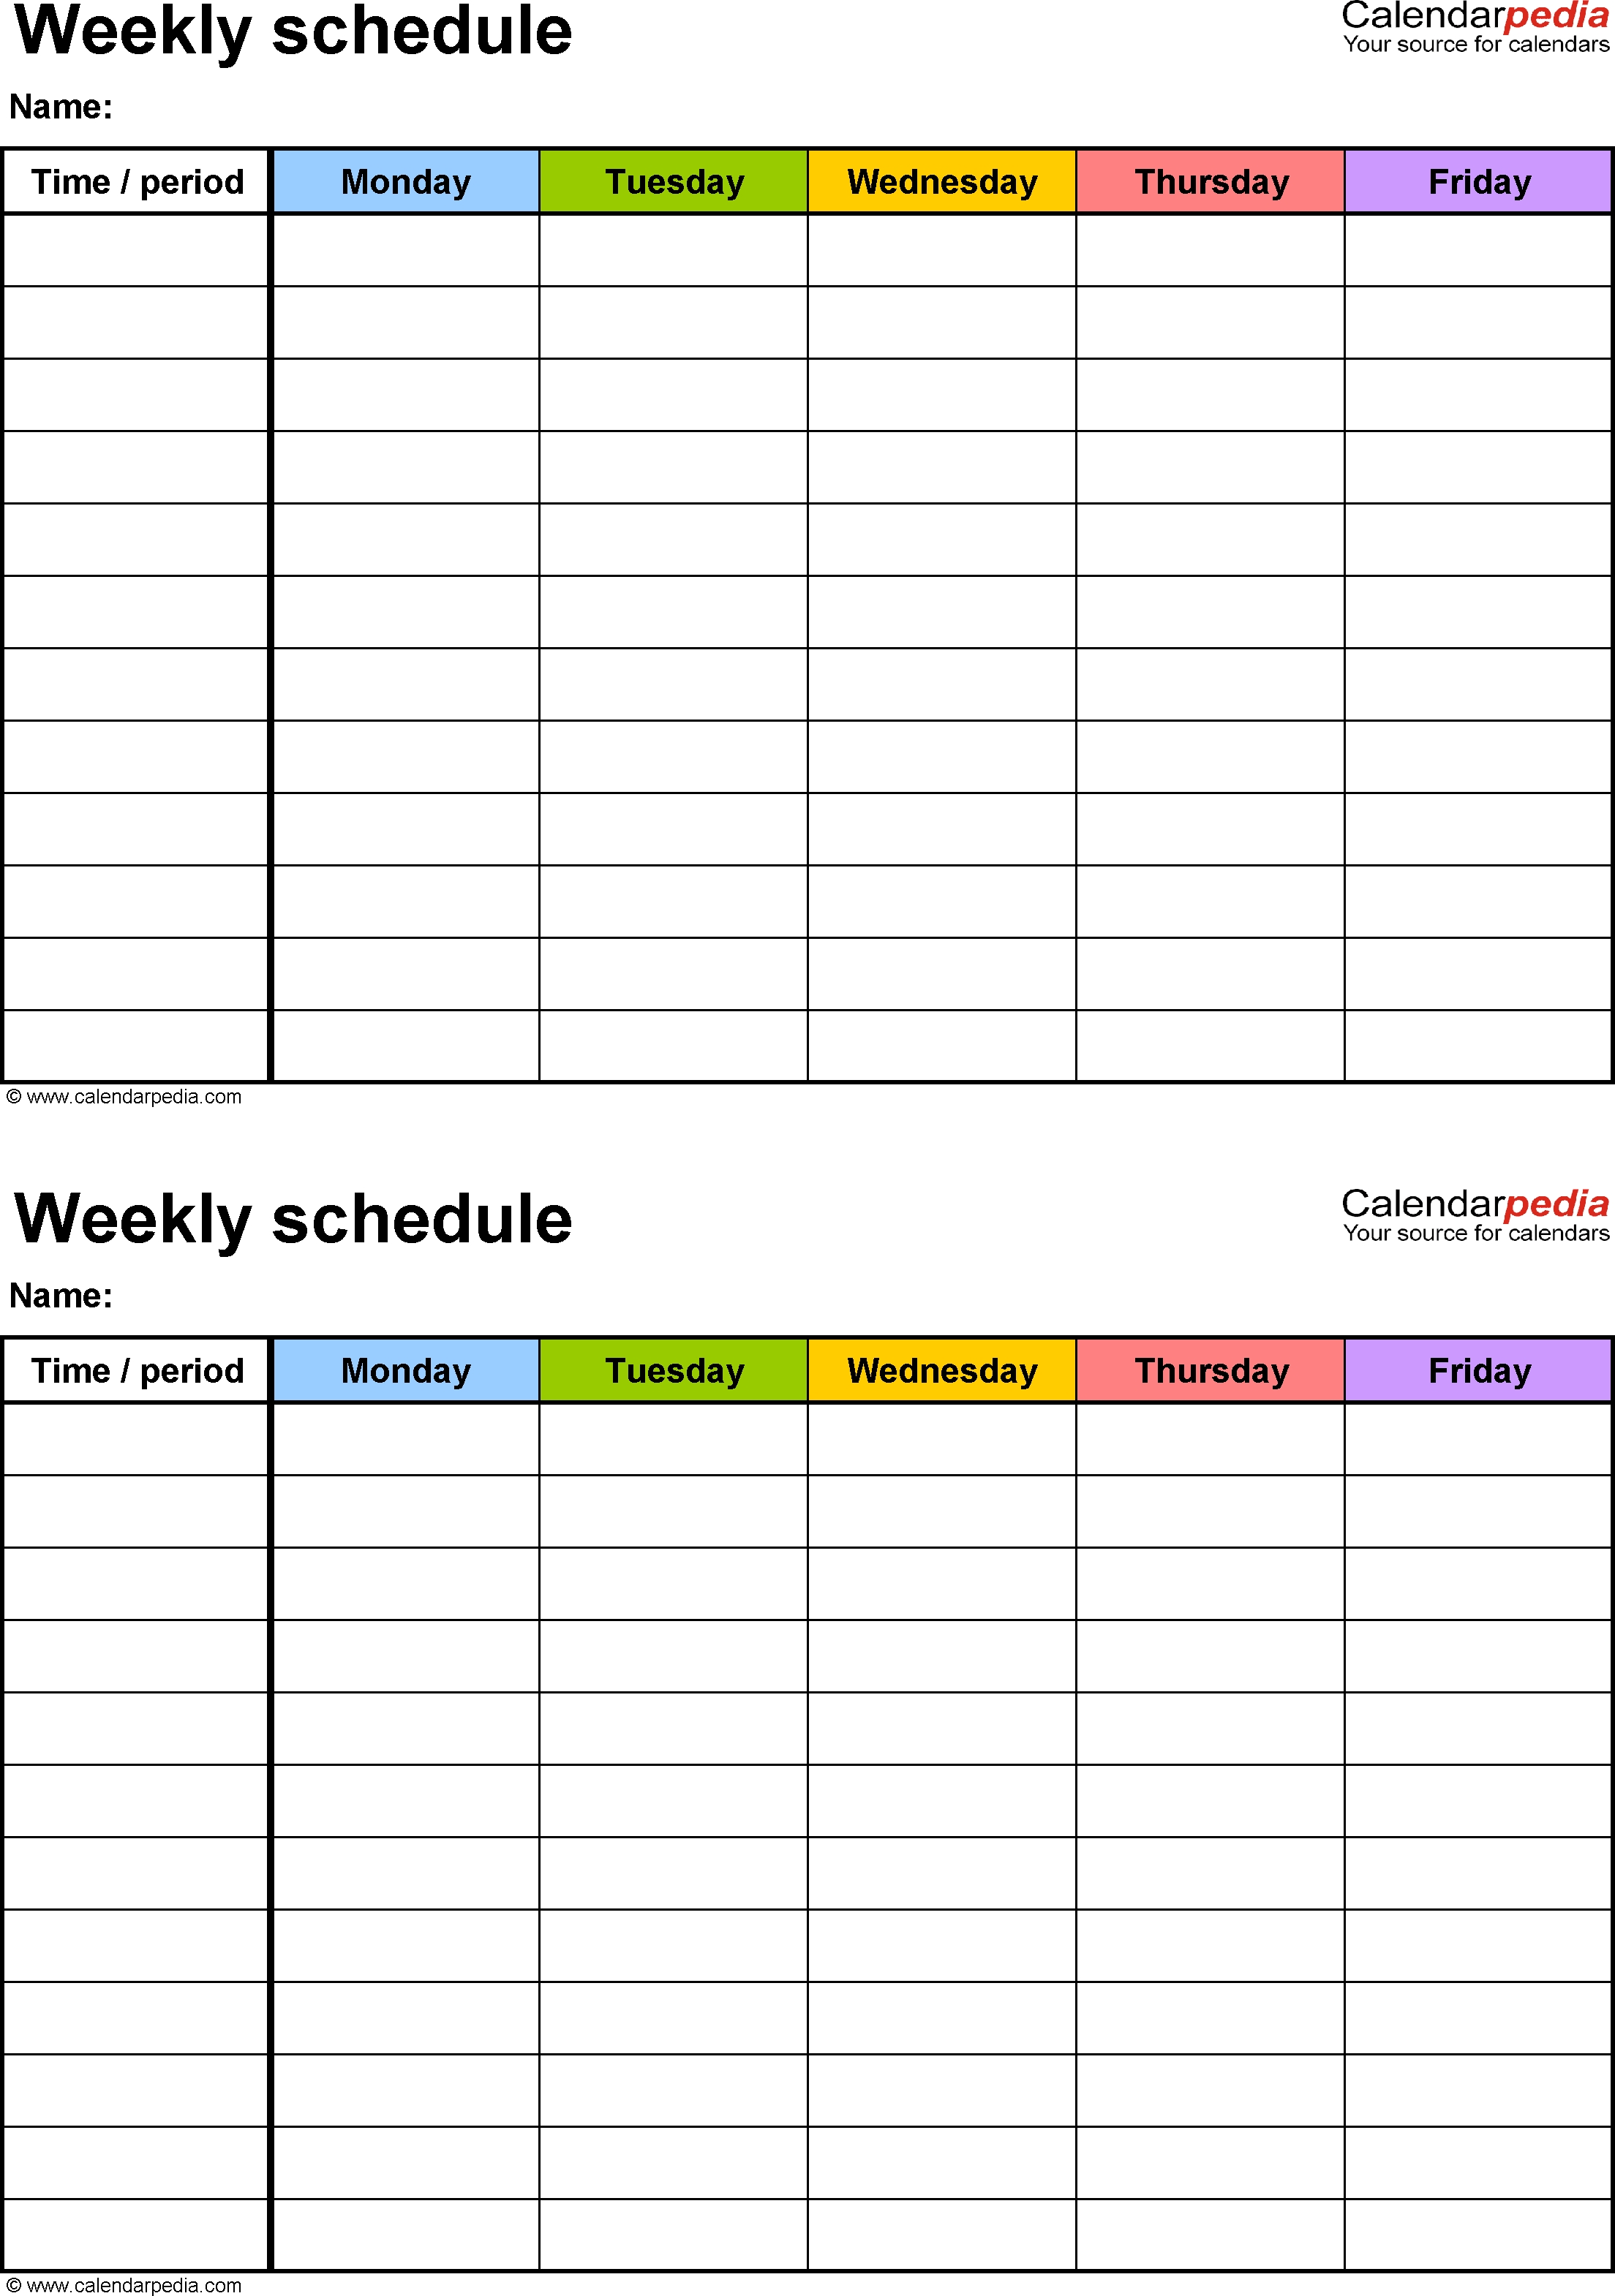 Weekly Schedule Template For Excel Version 3: 2 Schedules On One intended for Excel Calendar By Day For Planning